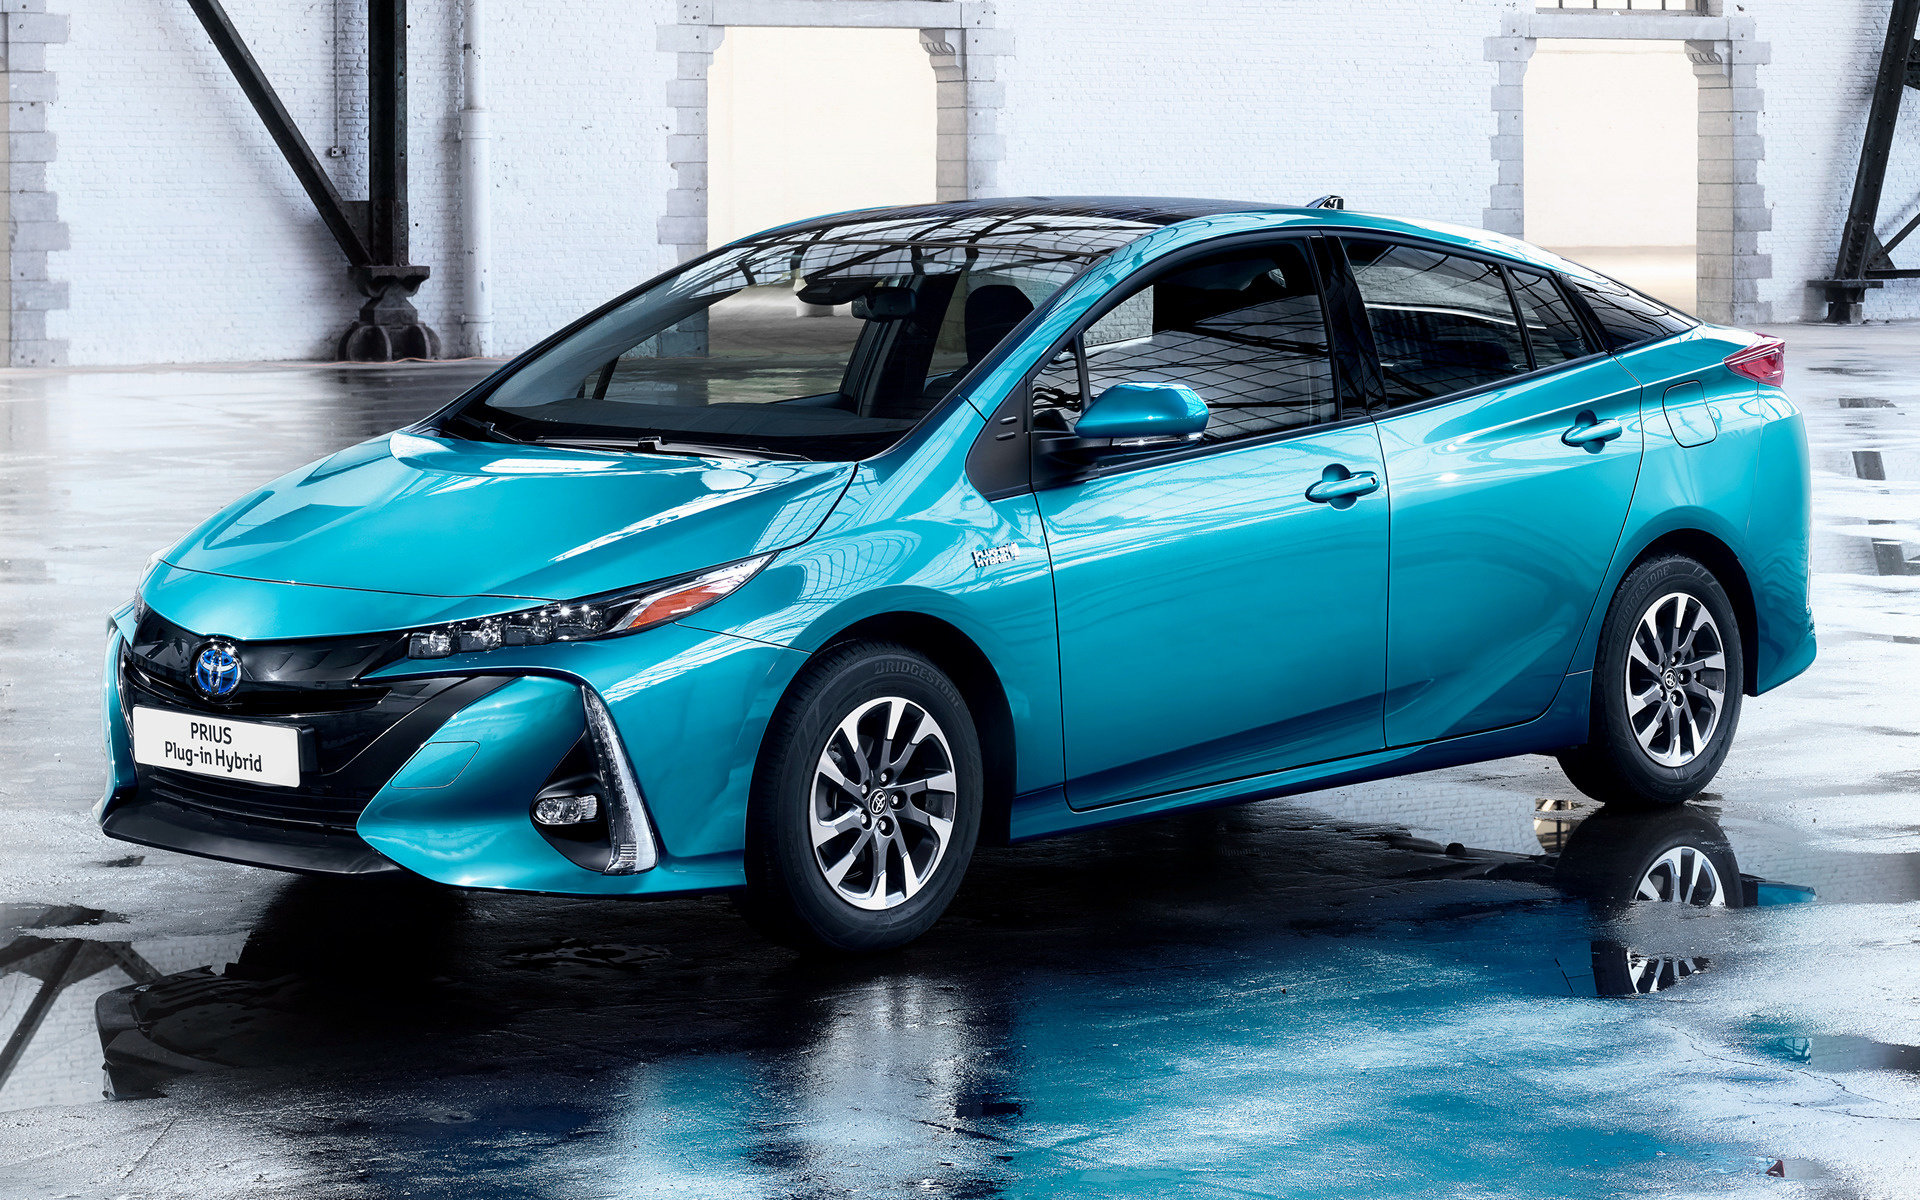 Toyota Prius Plug-in Hybrid (2016) Wallpapers and HD ...